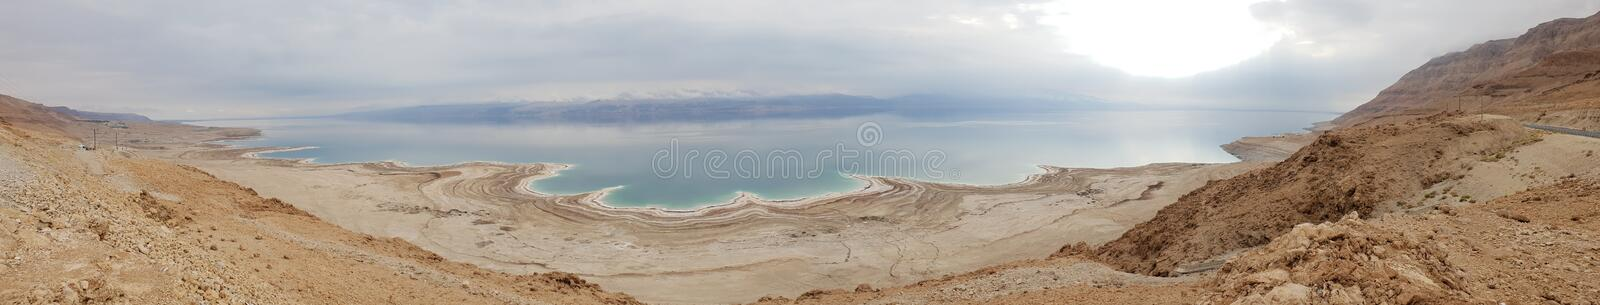 Winter at the lowest place in the world. The Dead sea, the lowest place in the world, -424m below se level , Ein Gedi, the border between israel and the Kingdom stock photo